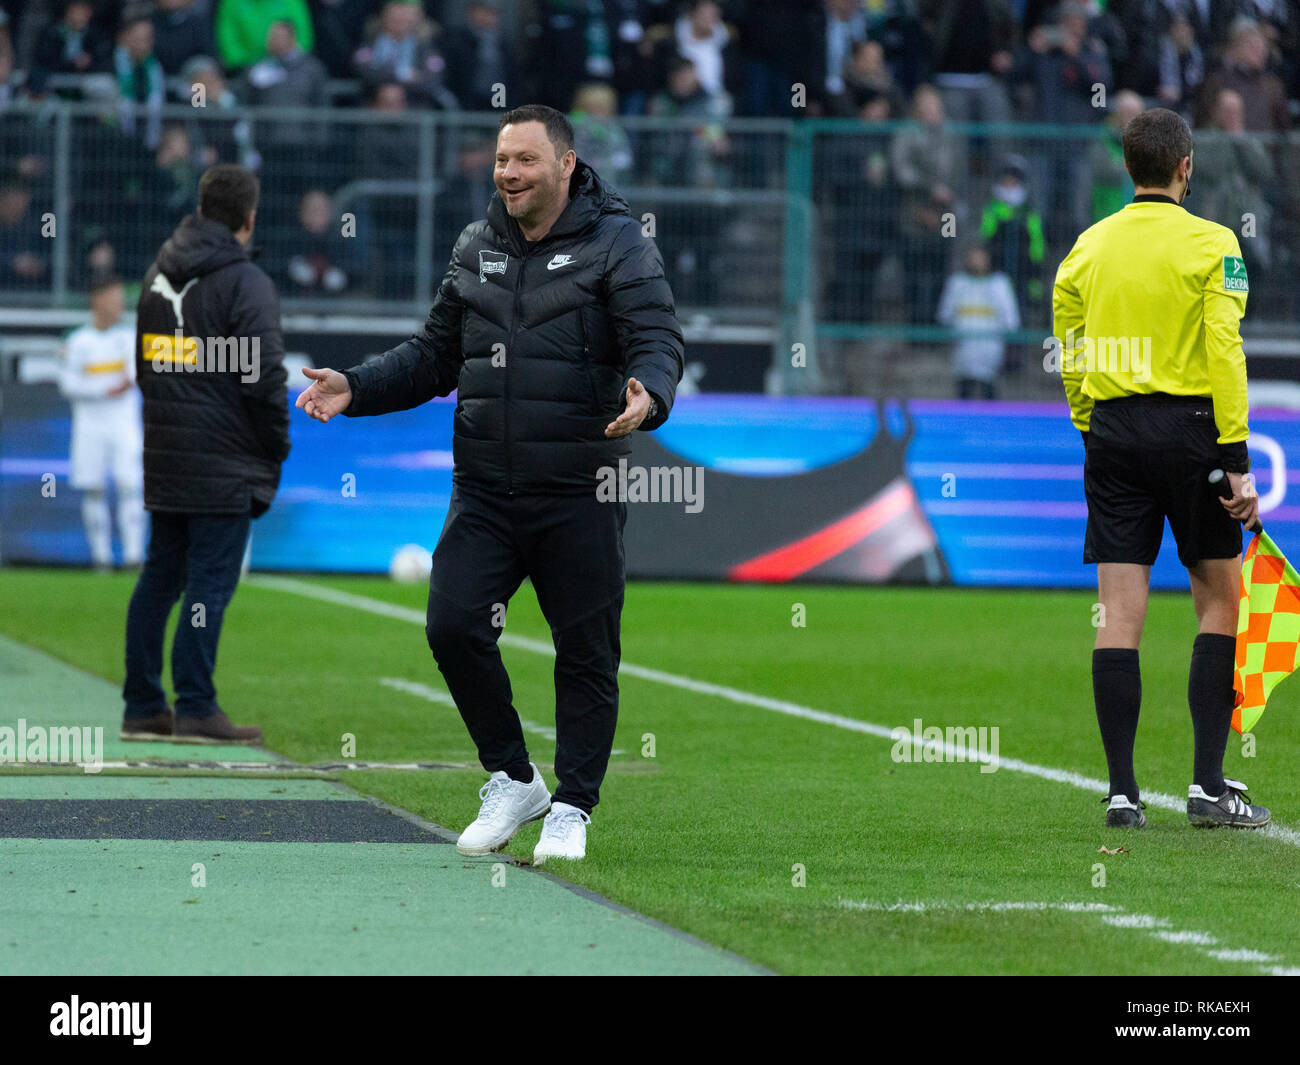 sports, football, Bundesliga, 2018/2019, Borussia Moenchengladbach vs Hertha BSC Berlin 0-3, Stadium Borussia Park, head coach Pal Dardai (Hertha), DFL REGULATIONS PROHIBIT ANY USE OF PHOTOGRAPHS AS IMAGE SEQUENCES AND/OR QUASI-VIDEO - Stock Image